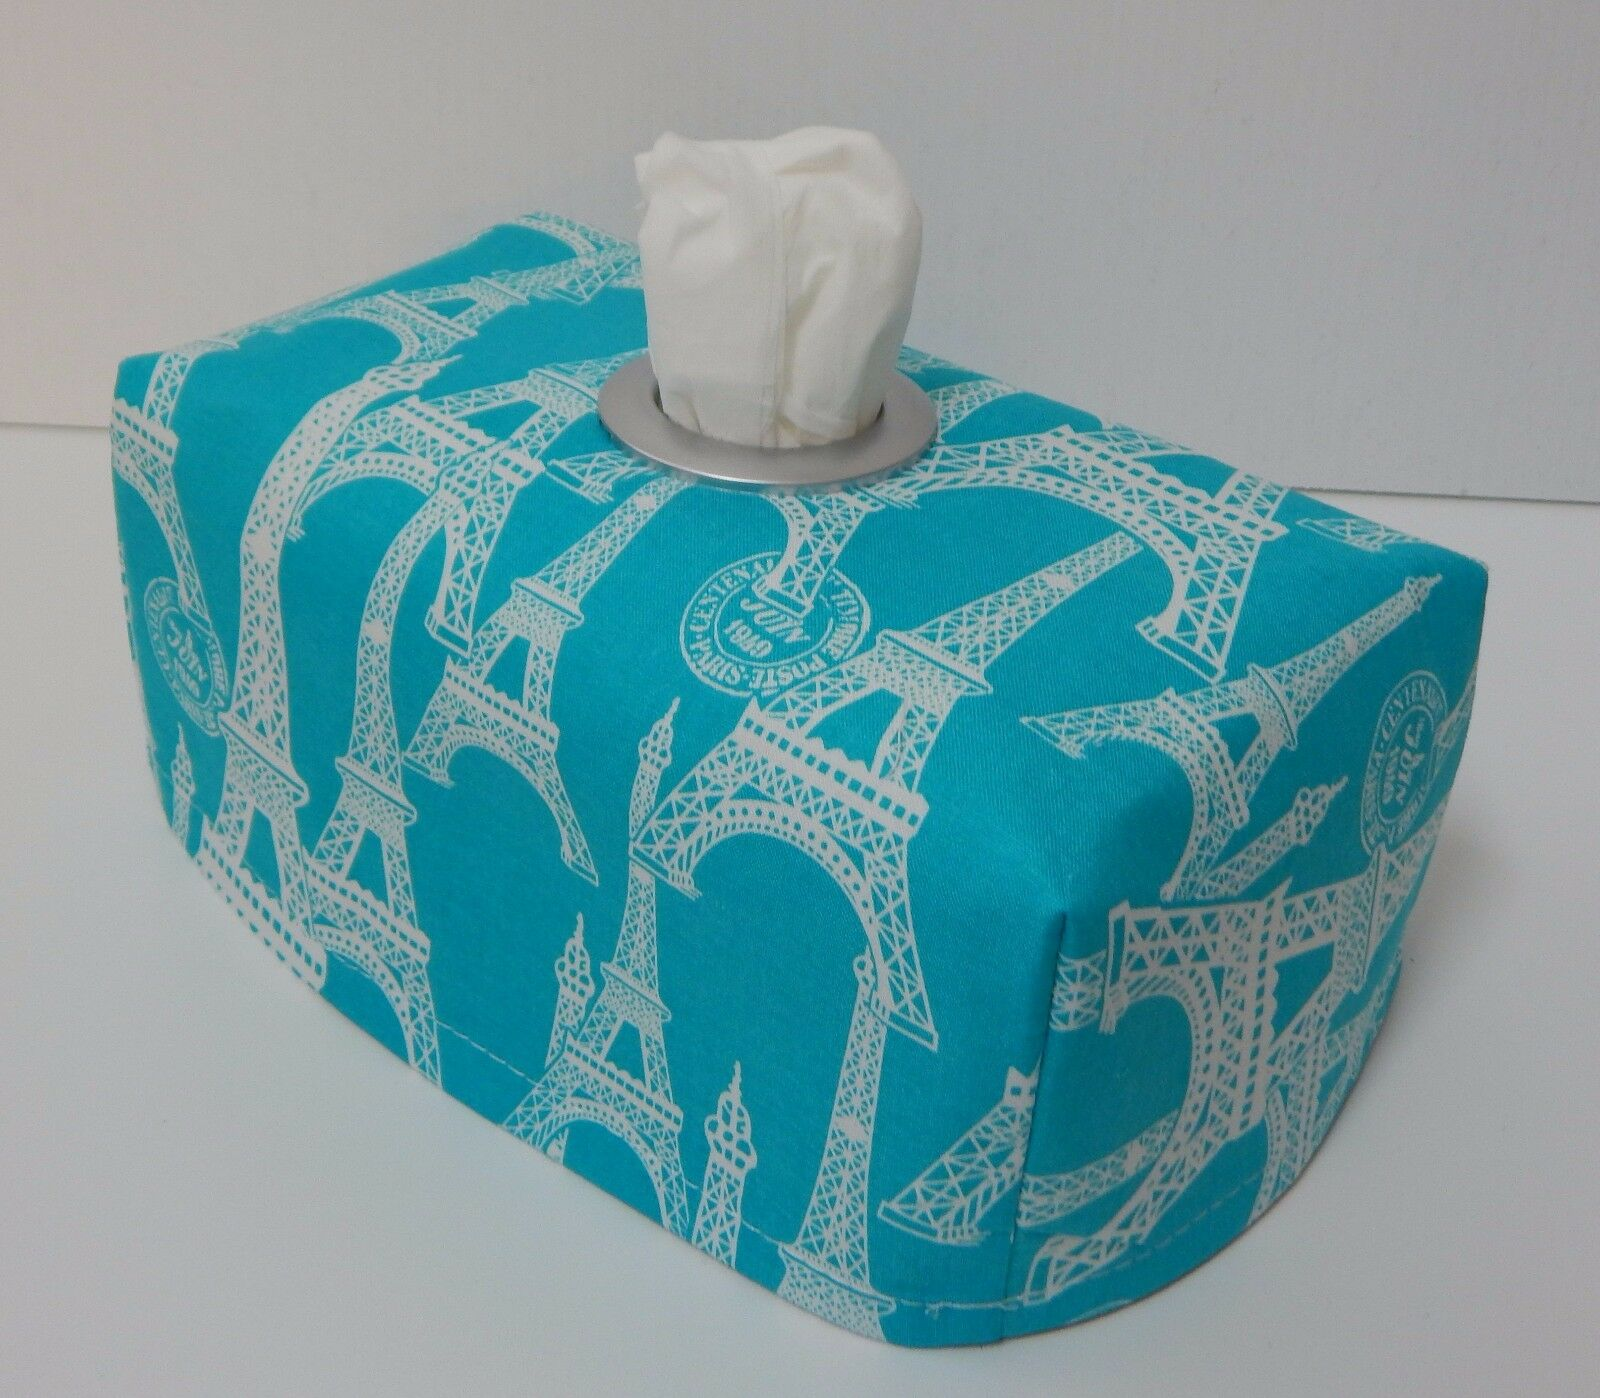 Eiffel Tower Aqua Tissue Box Cover With Circle Opening Lovely Gift 1 Of 1only 4 Available See More